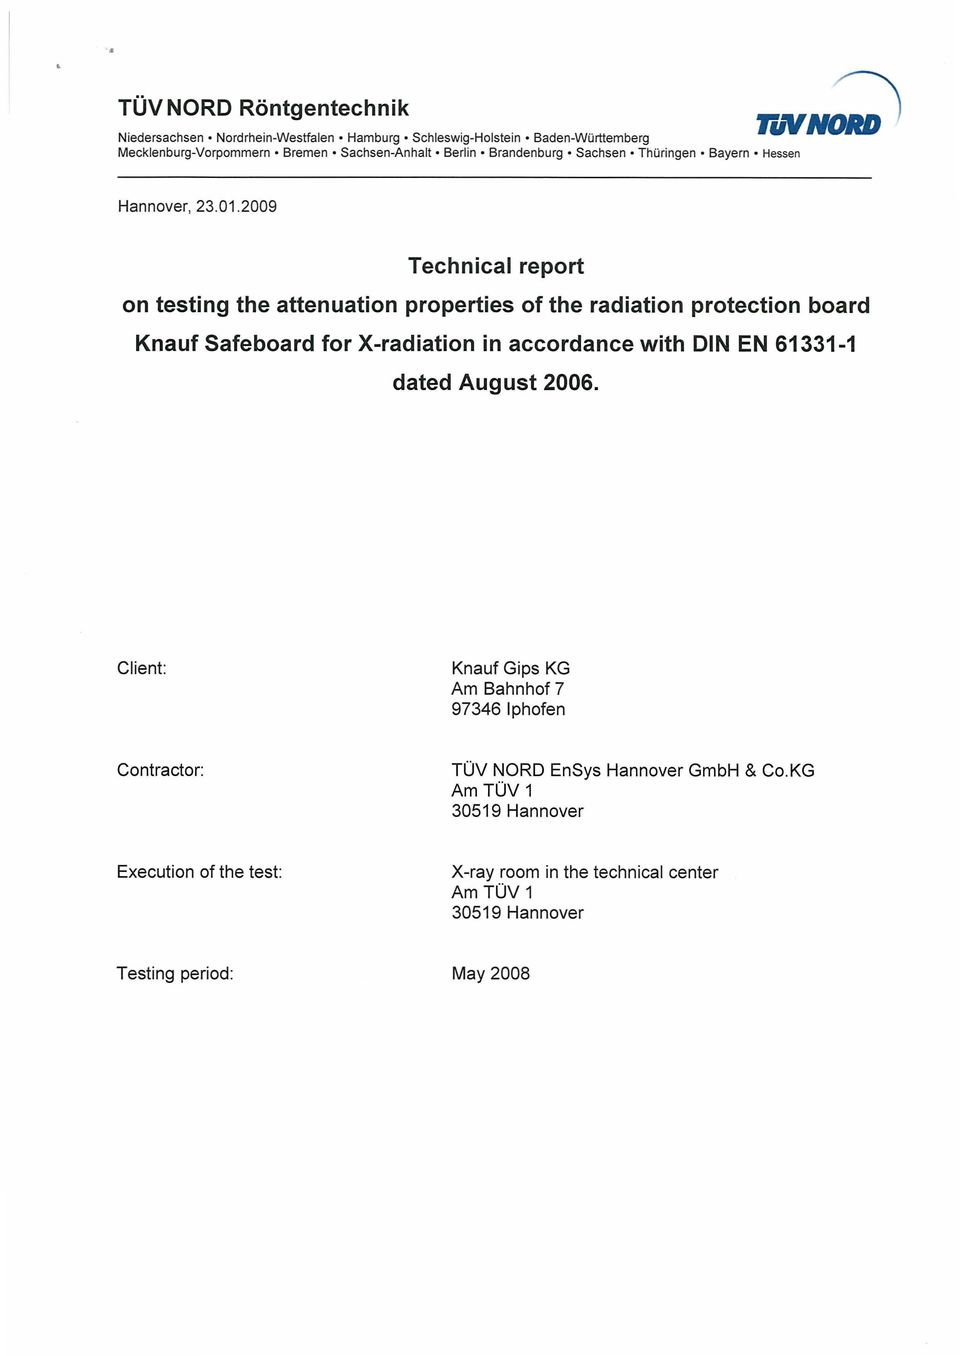 2009 Technical report on testing the attenuation properties of the radiation protection board Knauf Safeboard for X-radiation in accordance with DIN EN